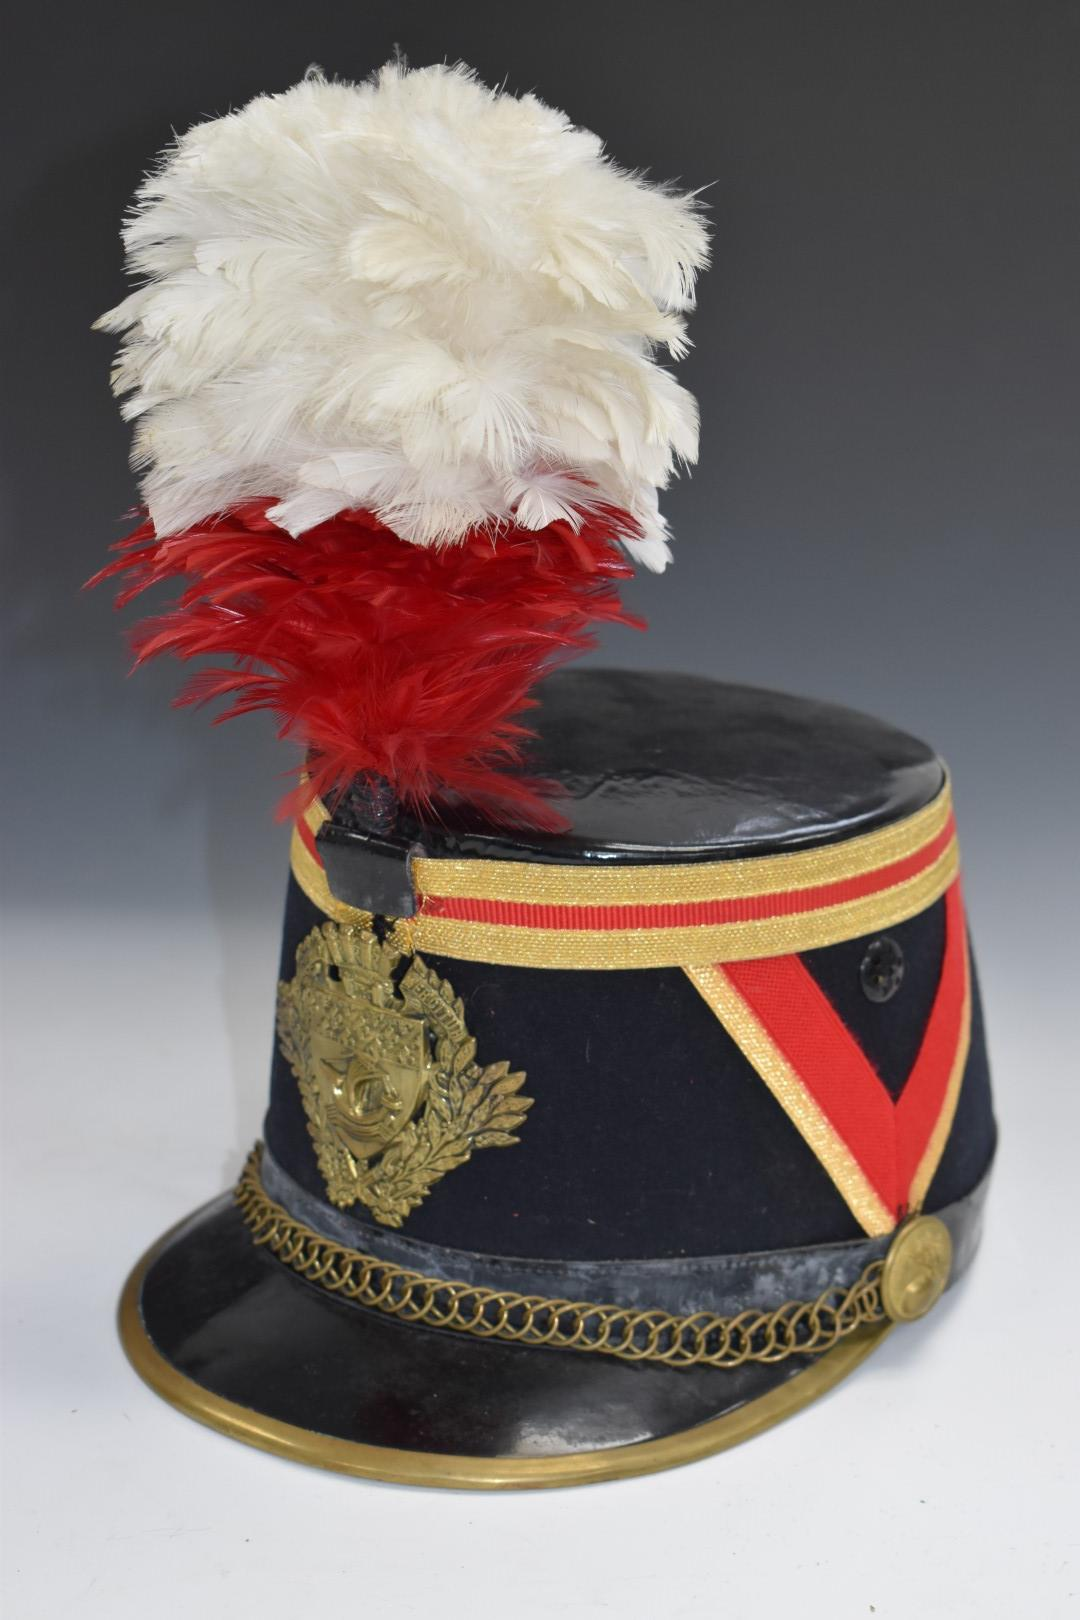 French fireman's parade hat with Paris coat of arms to front and feather plume above